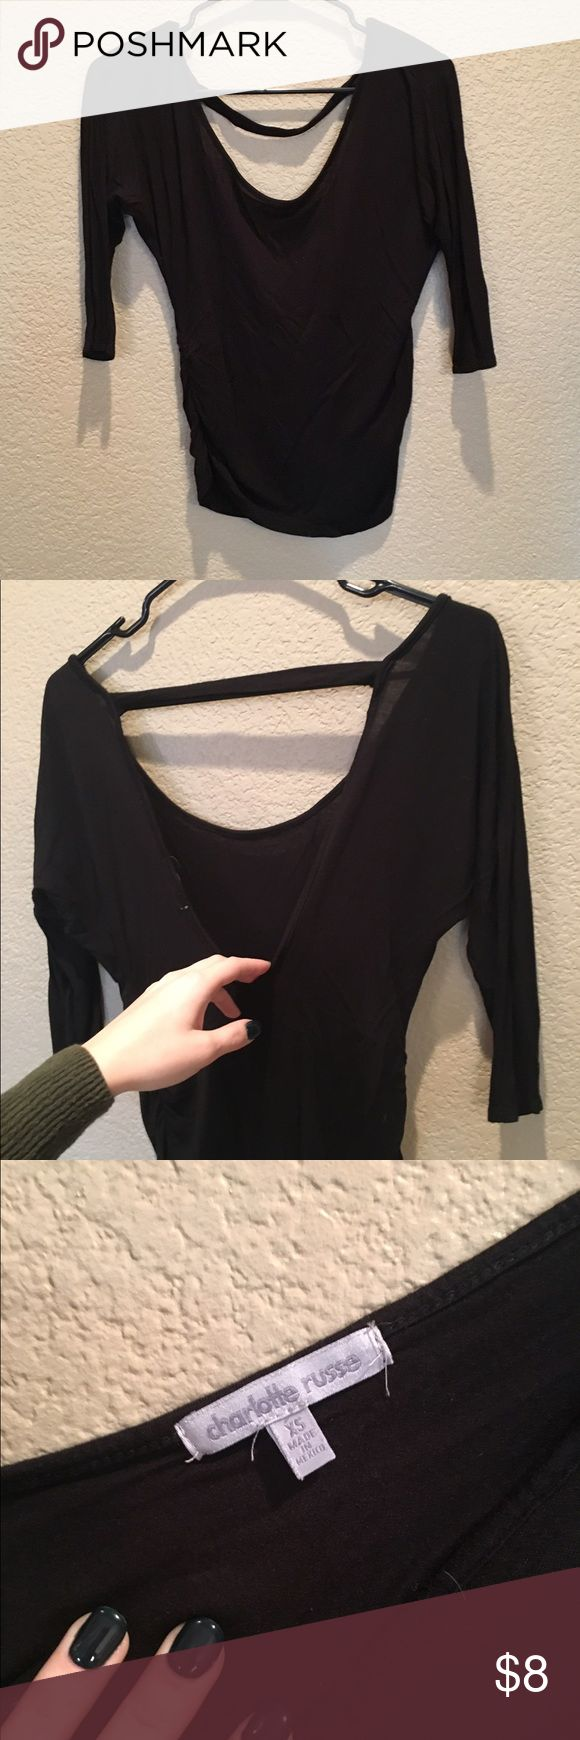 Black Low Back Shirt Charlotte Russe Kind of see through Body con  XS PacSun Tops Blouses